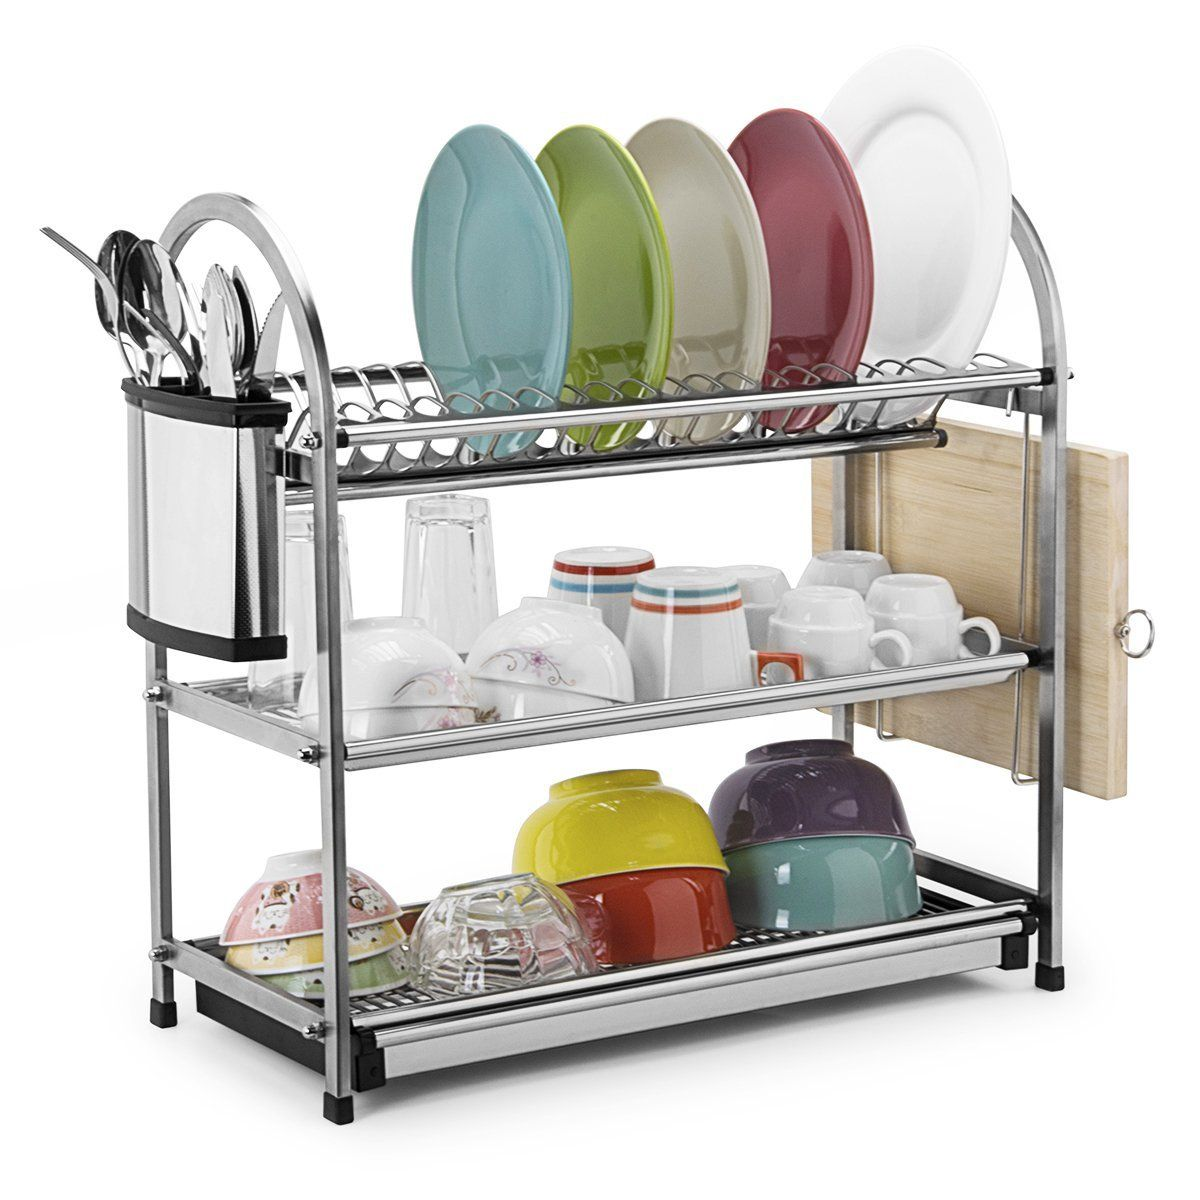 Amazon Drying Rack Amazon Toplife 3 Tier Stainless Steel Rustproof Dish Drainer